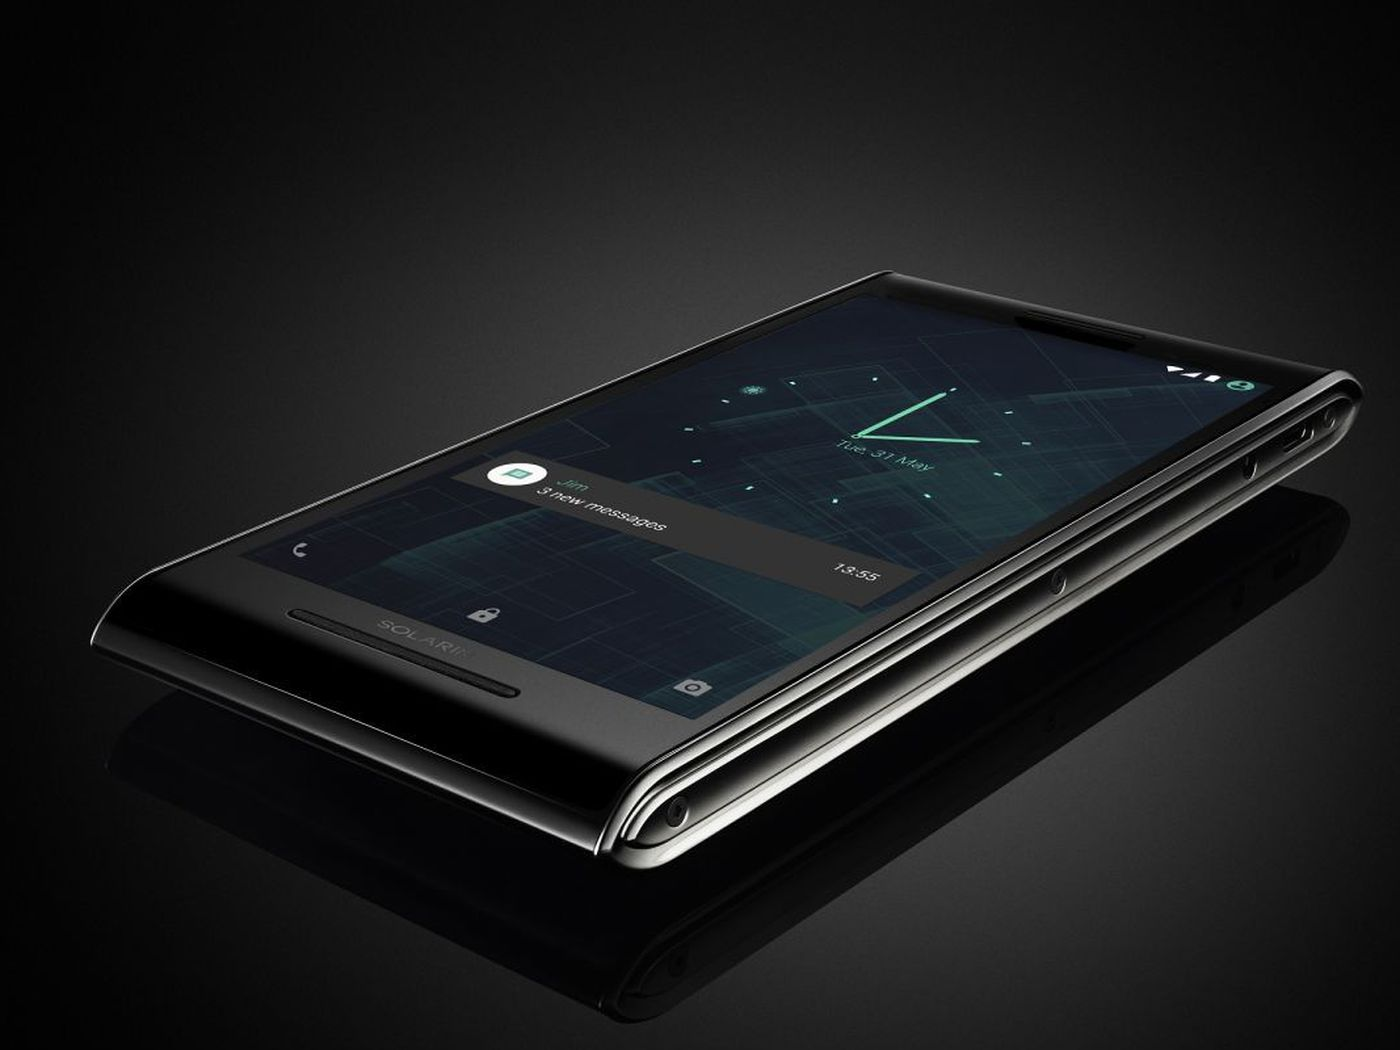 Solarin is a new smartphone promising 'military-grade